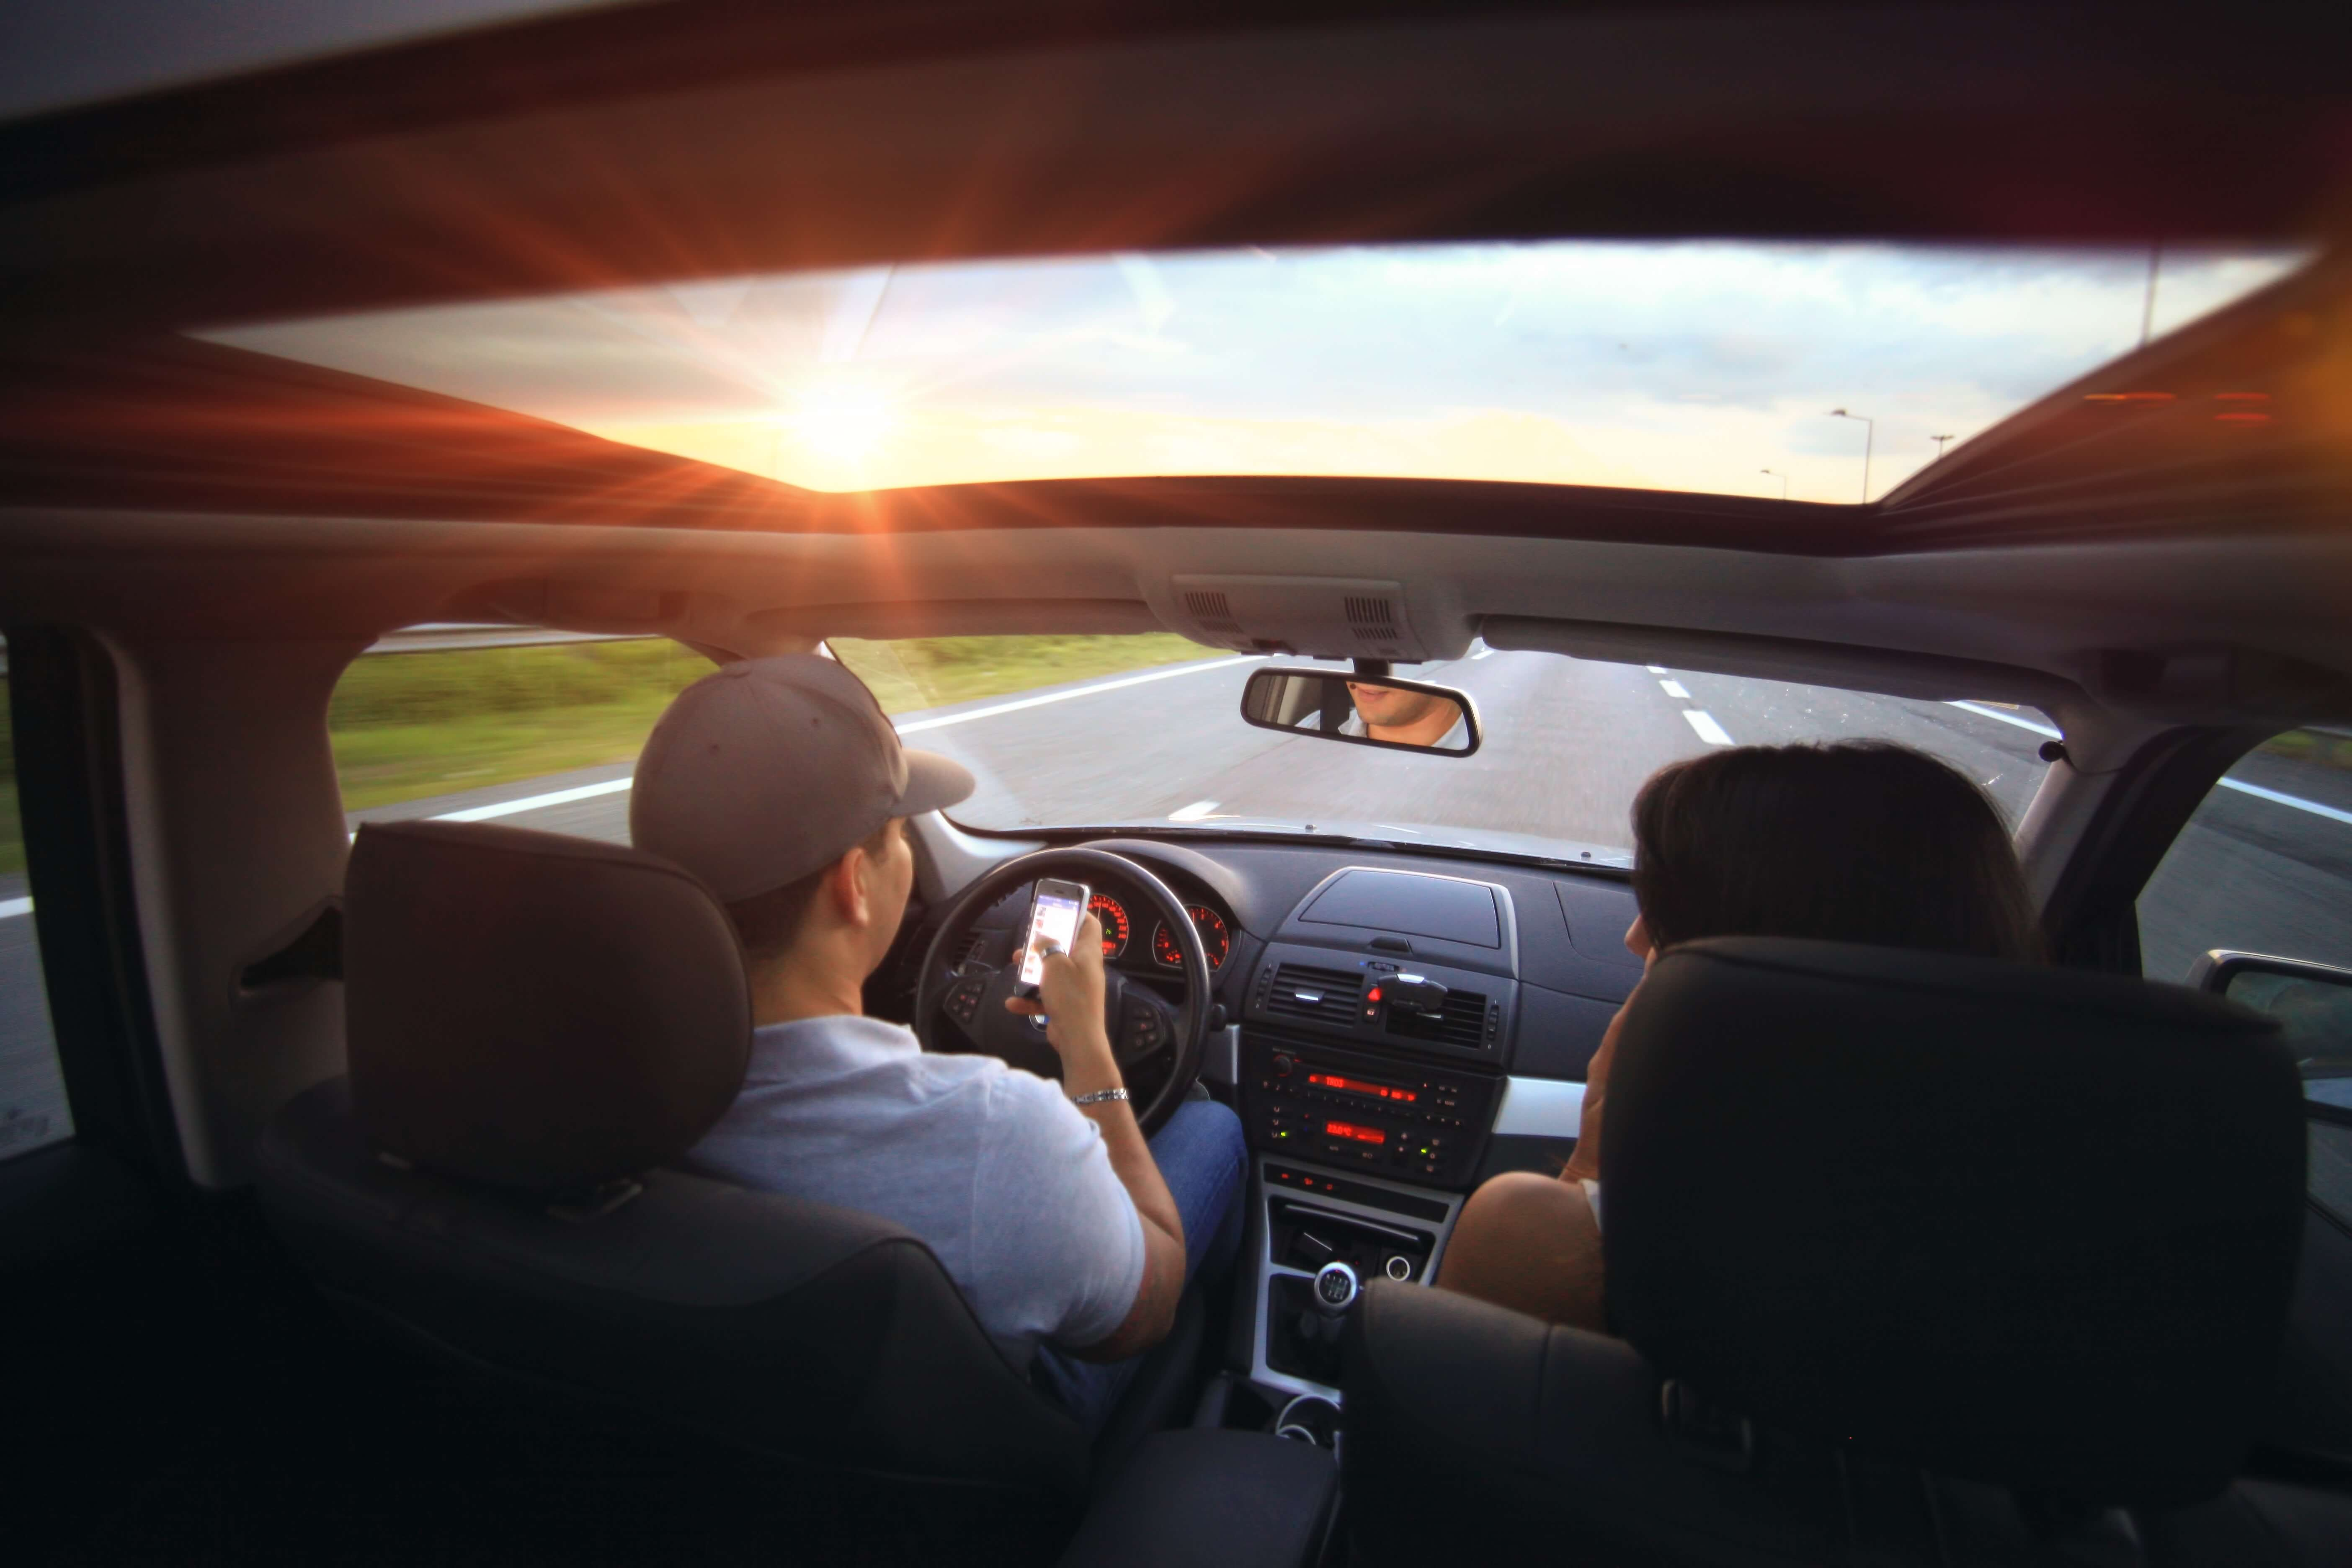 Texting and Driving Illegal under New Florida Law